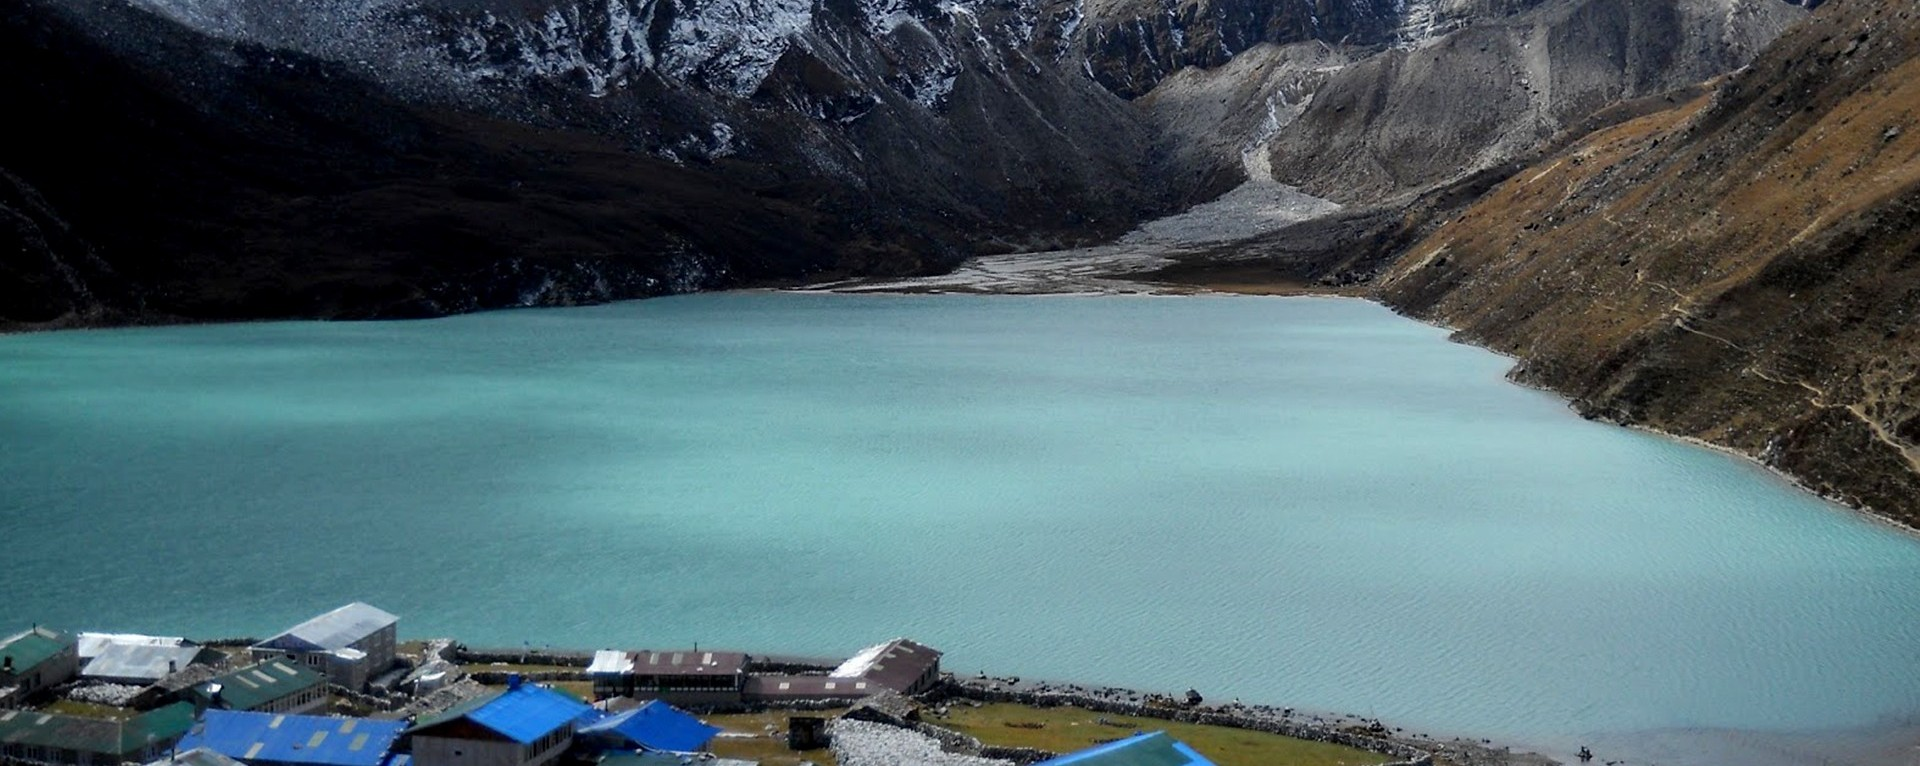 Dudh Kunda(Milky Lake)Trekking in Everest-0